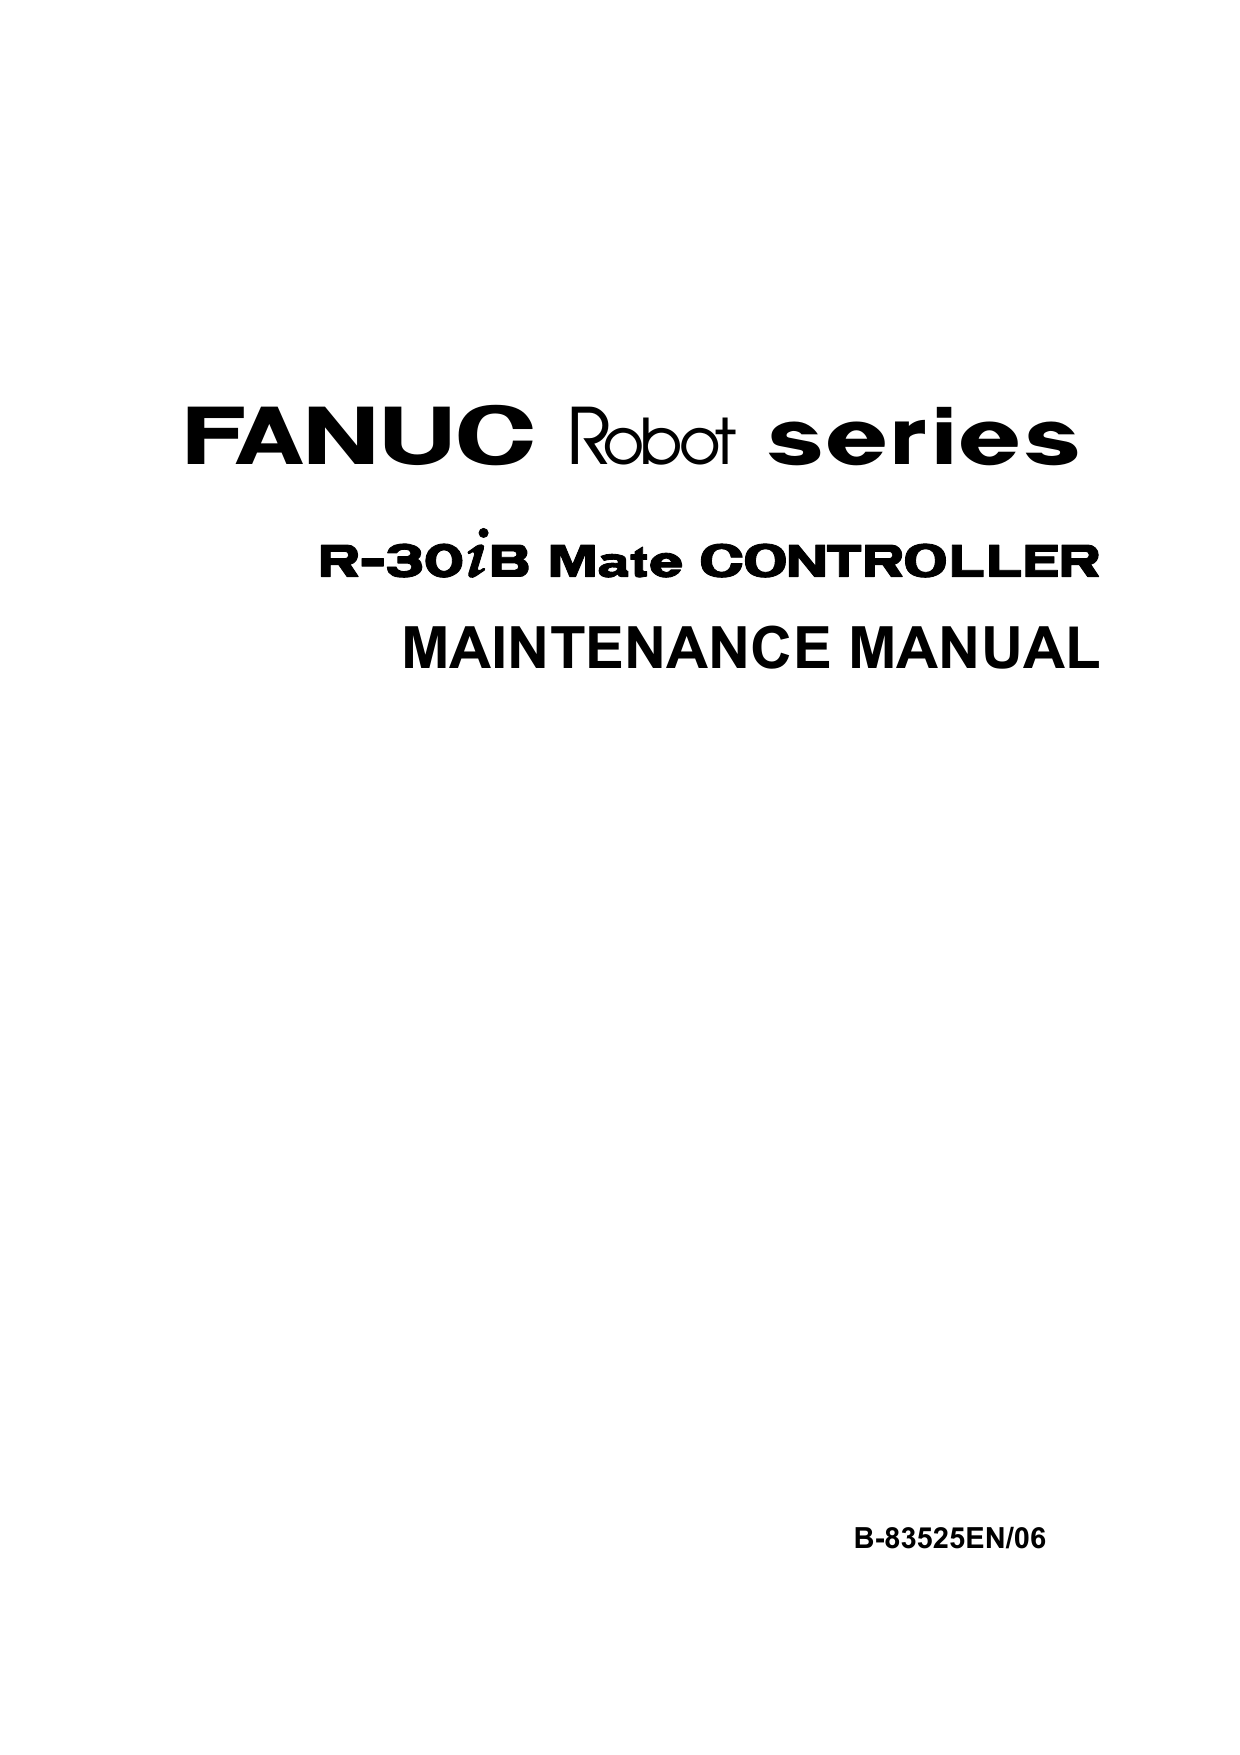 R-30iB Mate Controller Maintenance Manual B-83525EN 06